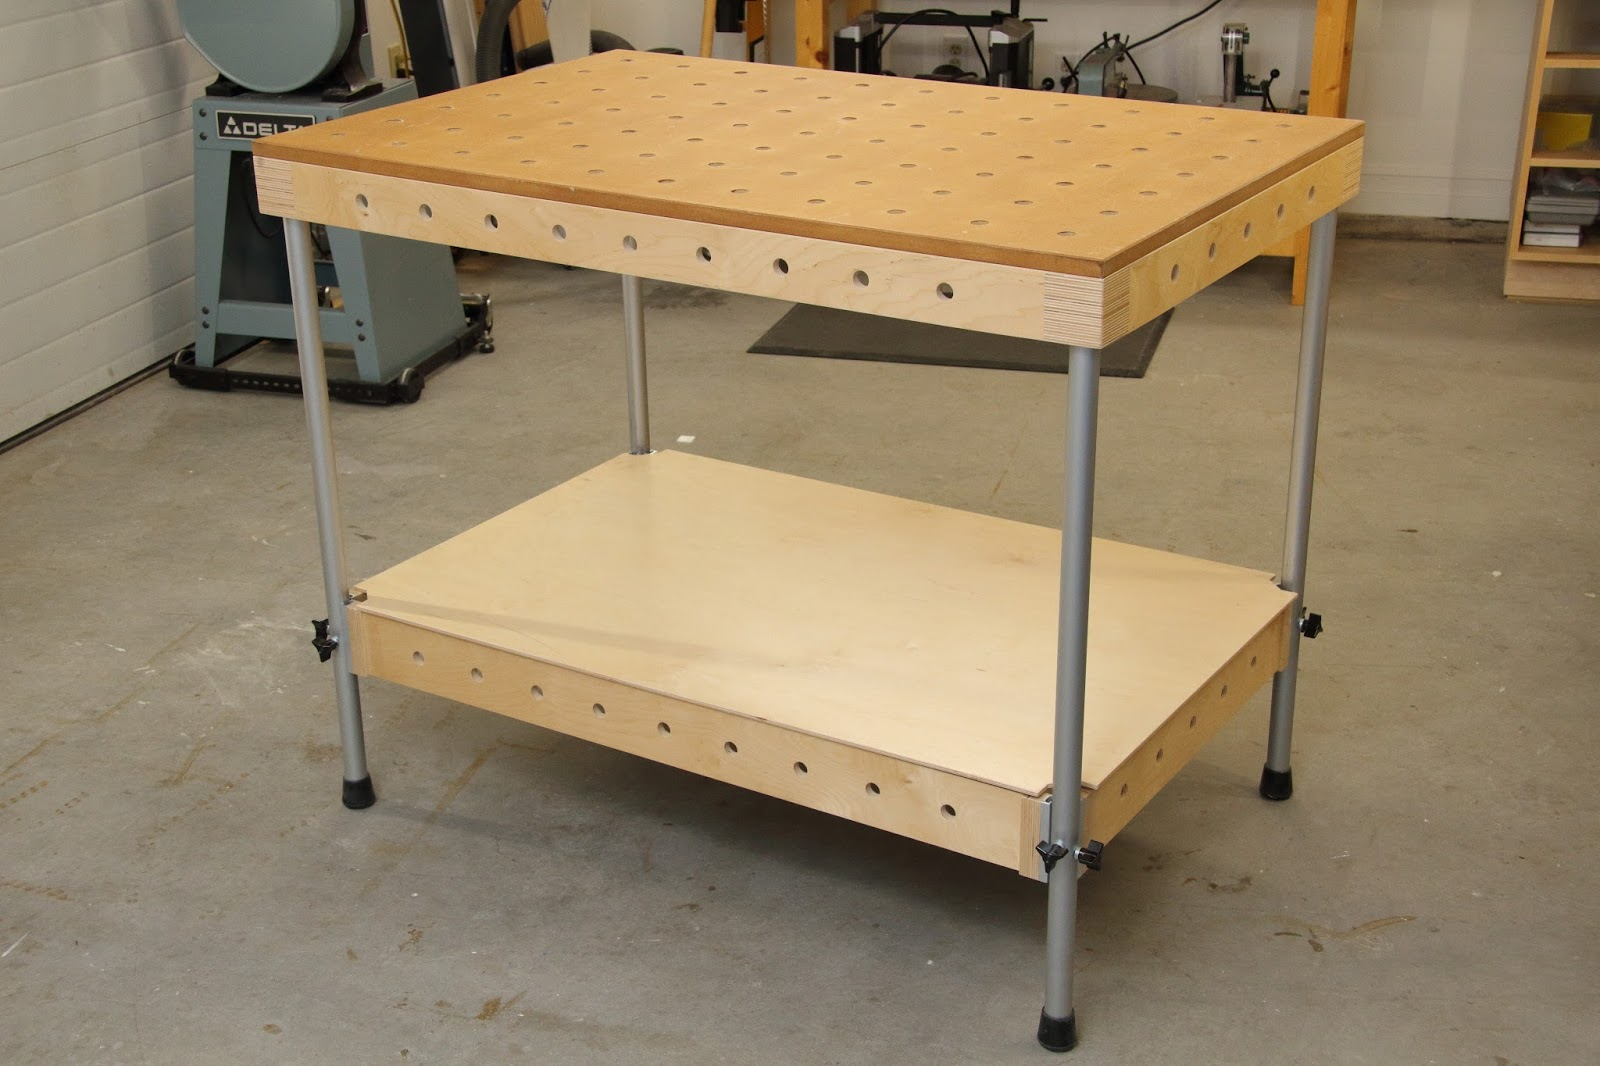 The Multi Purpose Table (MPT) Is A Portable Work Table That I Have Designed  And Built To Fill The Need For A Shop Built, Easily Portable Work Table  That ...